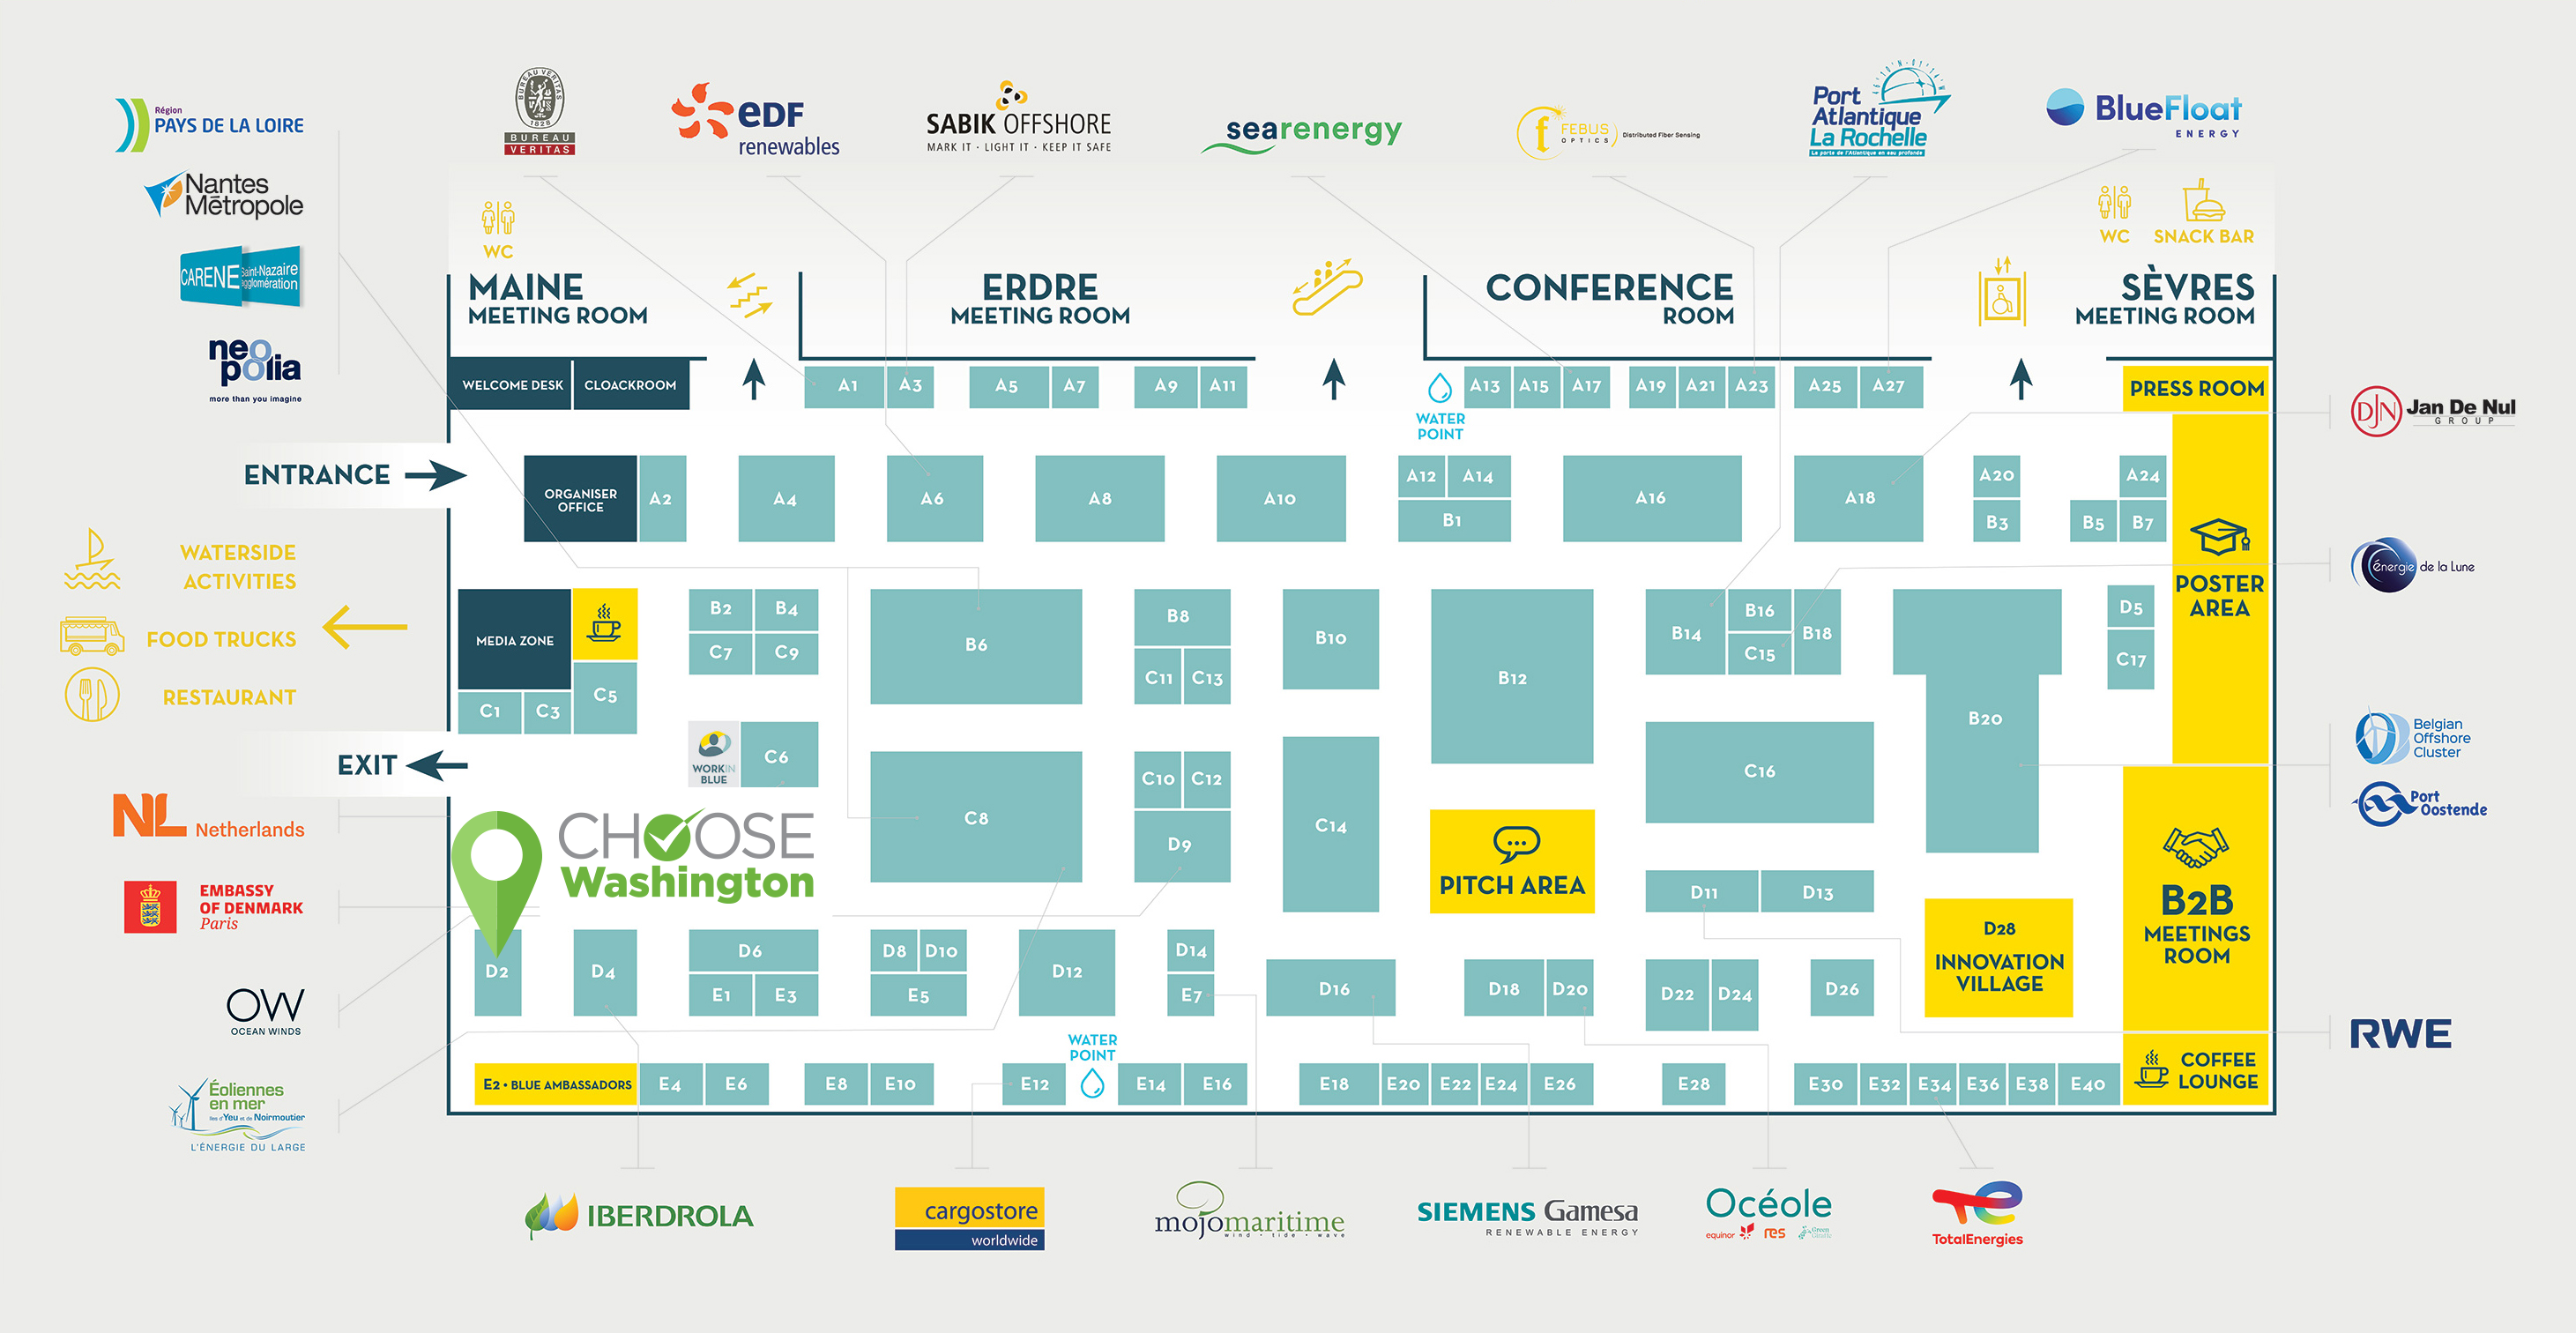 Seanergy Map - Choose Washington Booth at D2